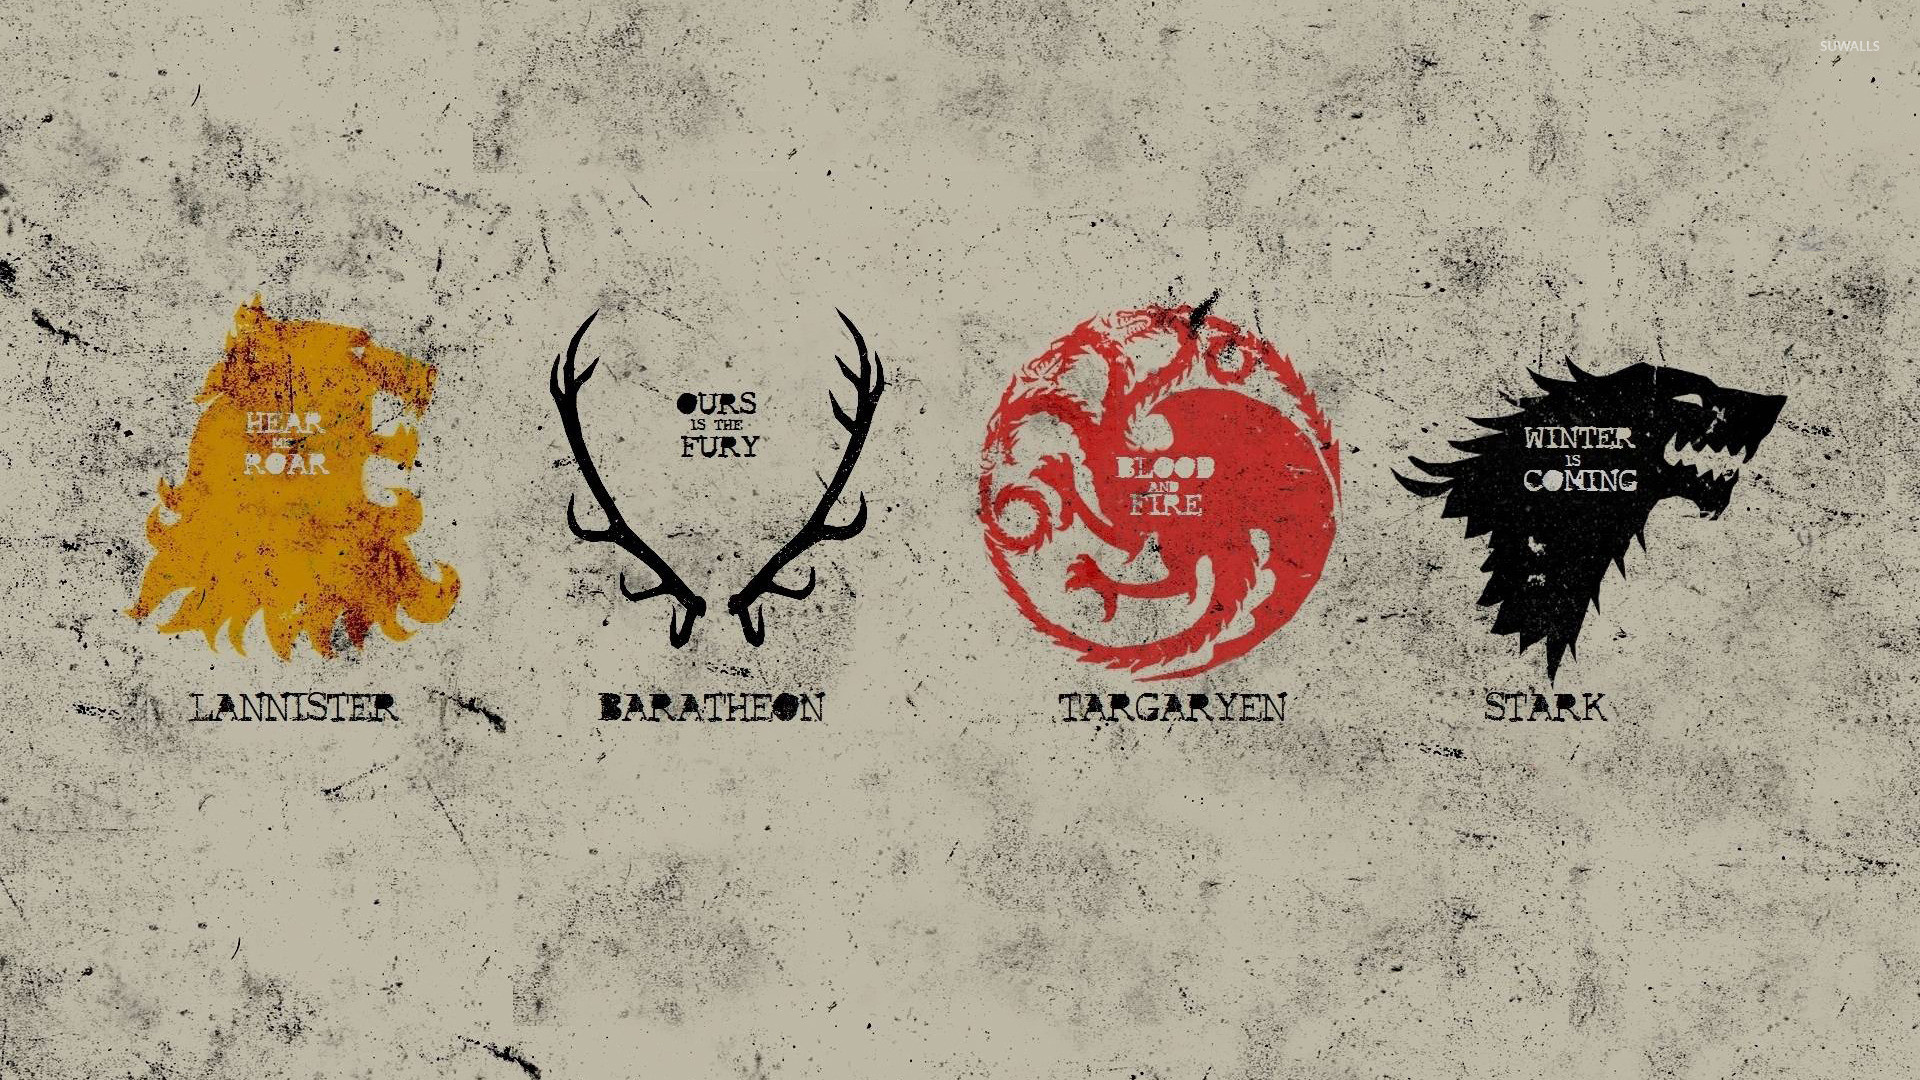 1920x1080 Game of Thrones [2] wallpaper  jpg